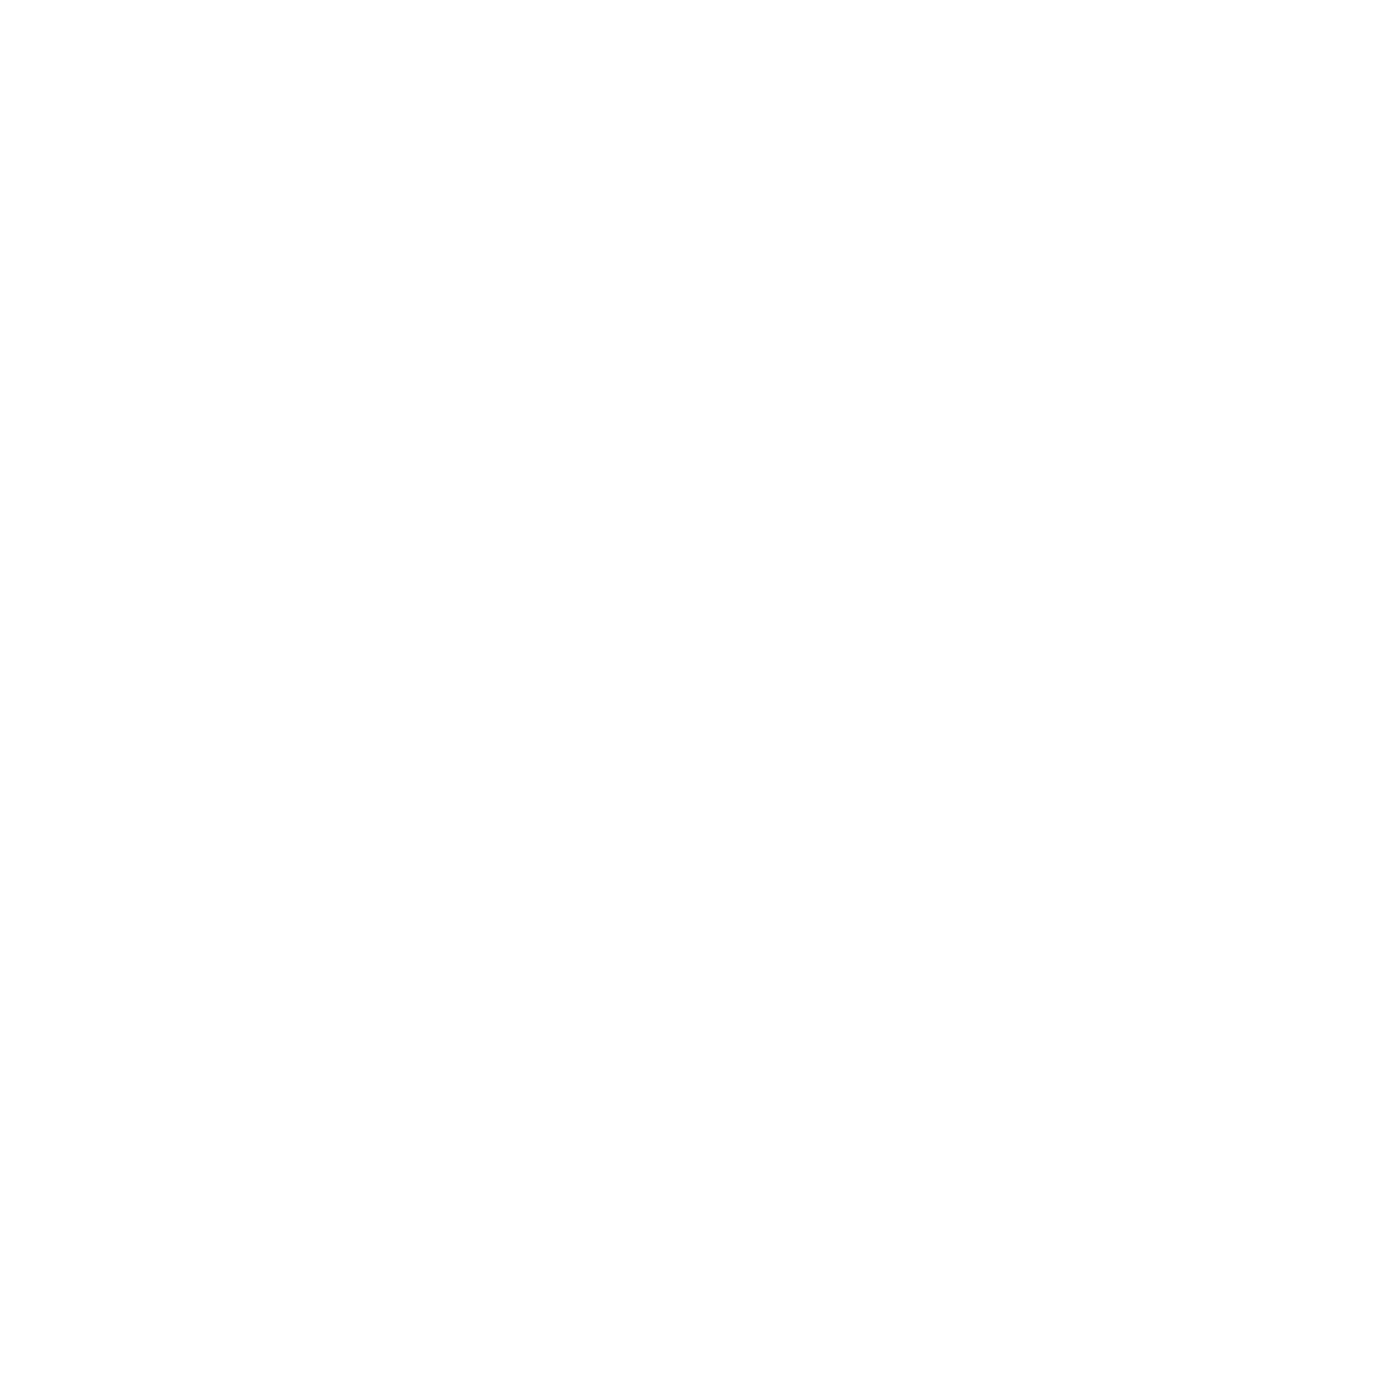 SCHOOL OF POLITICAL HOPE